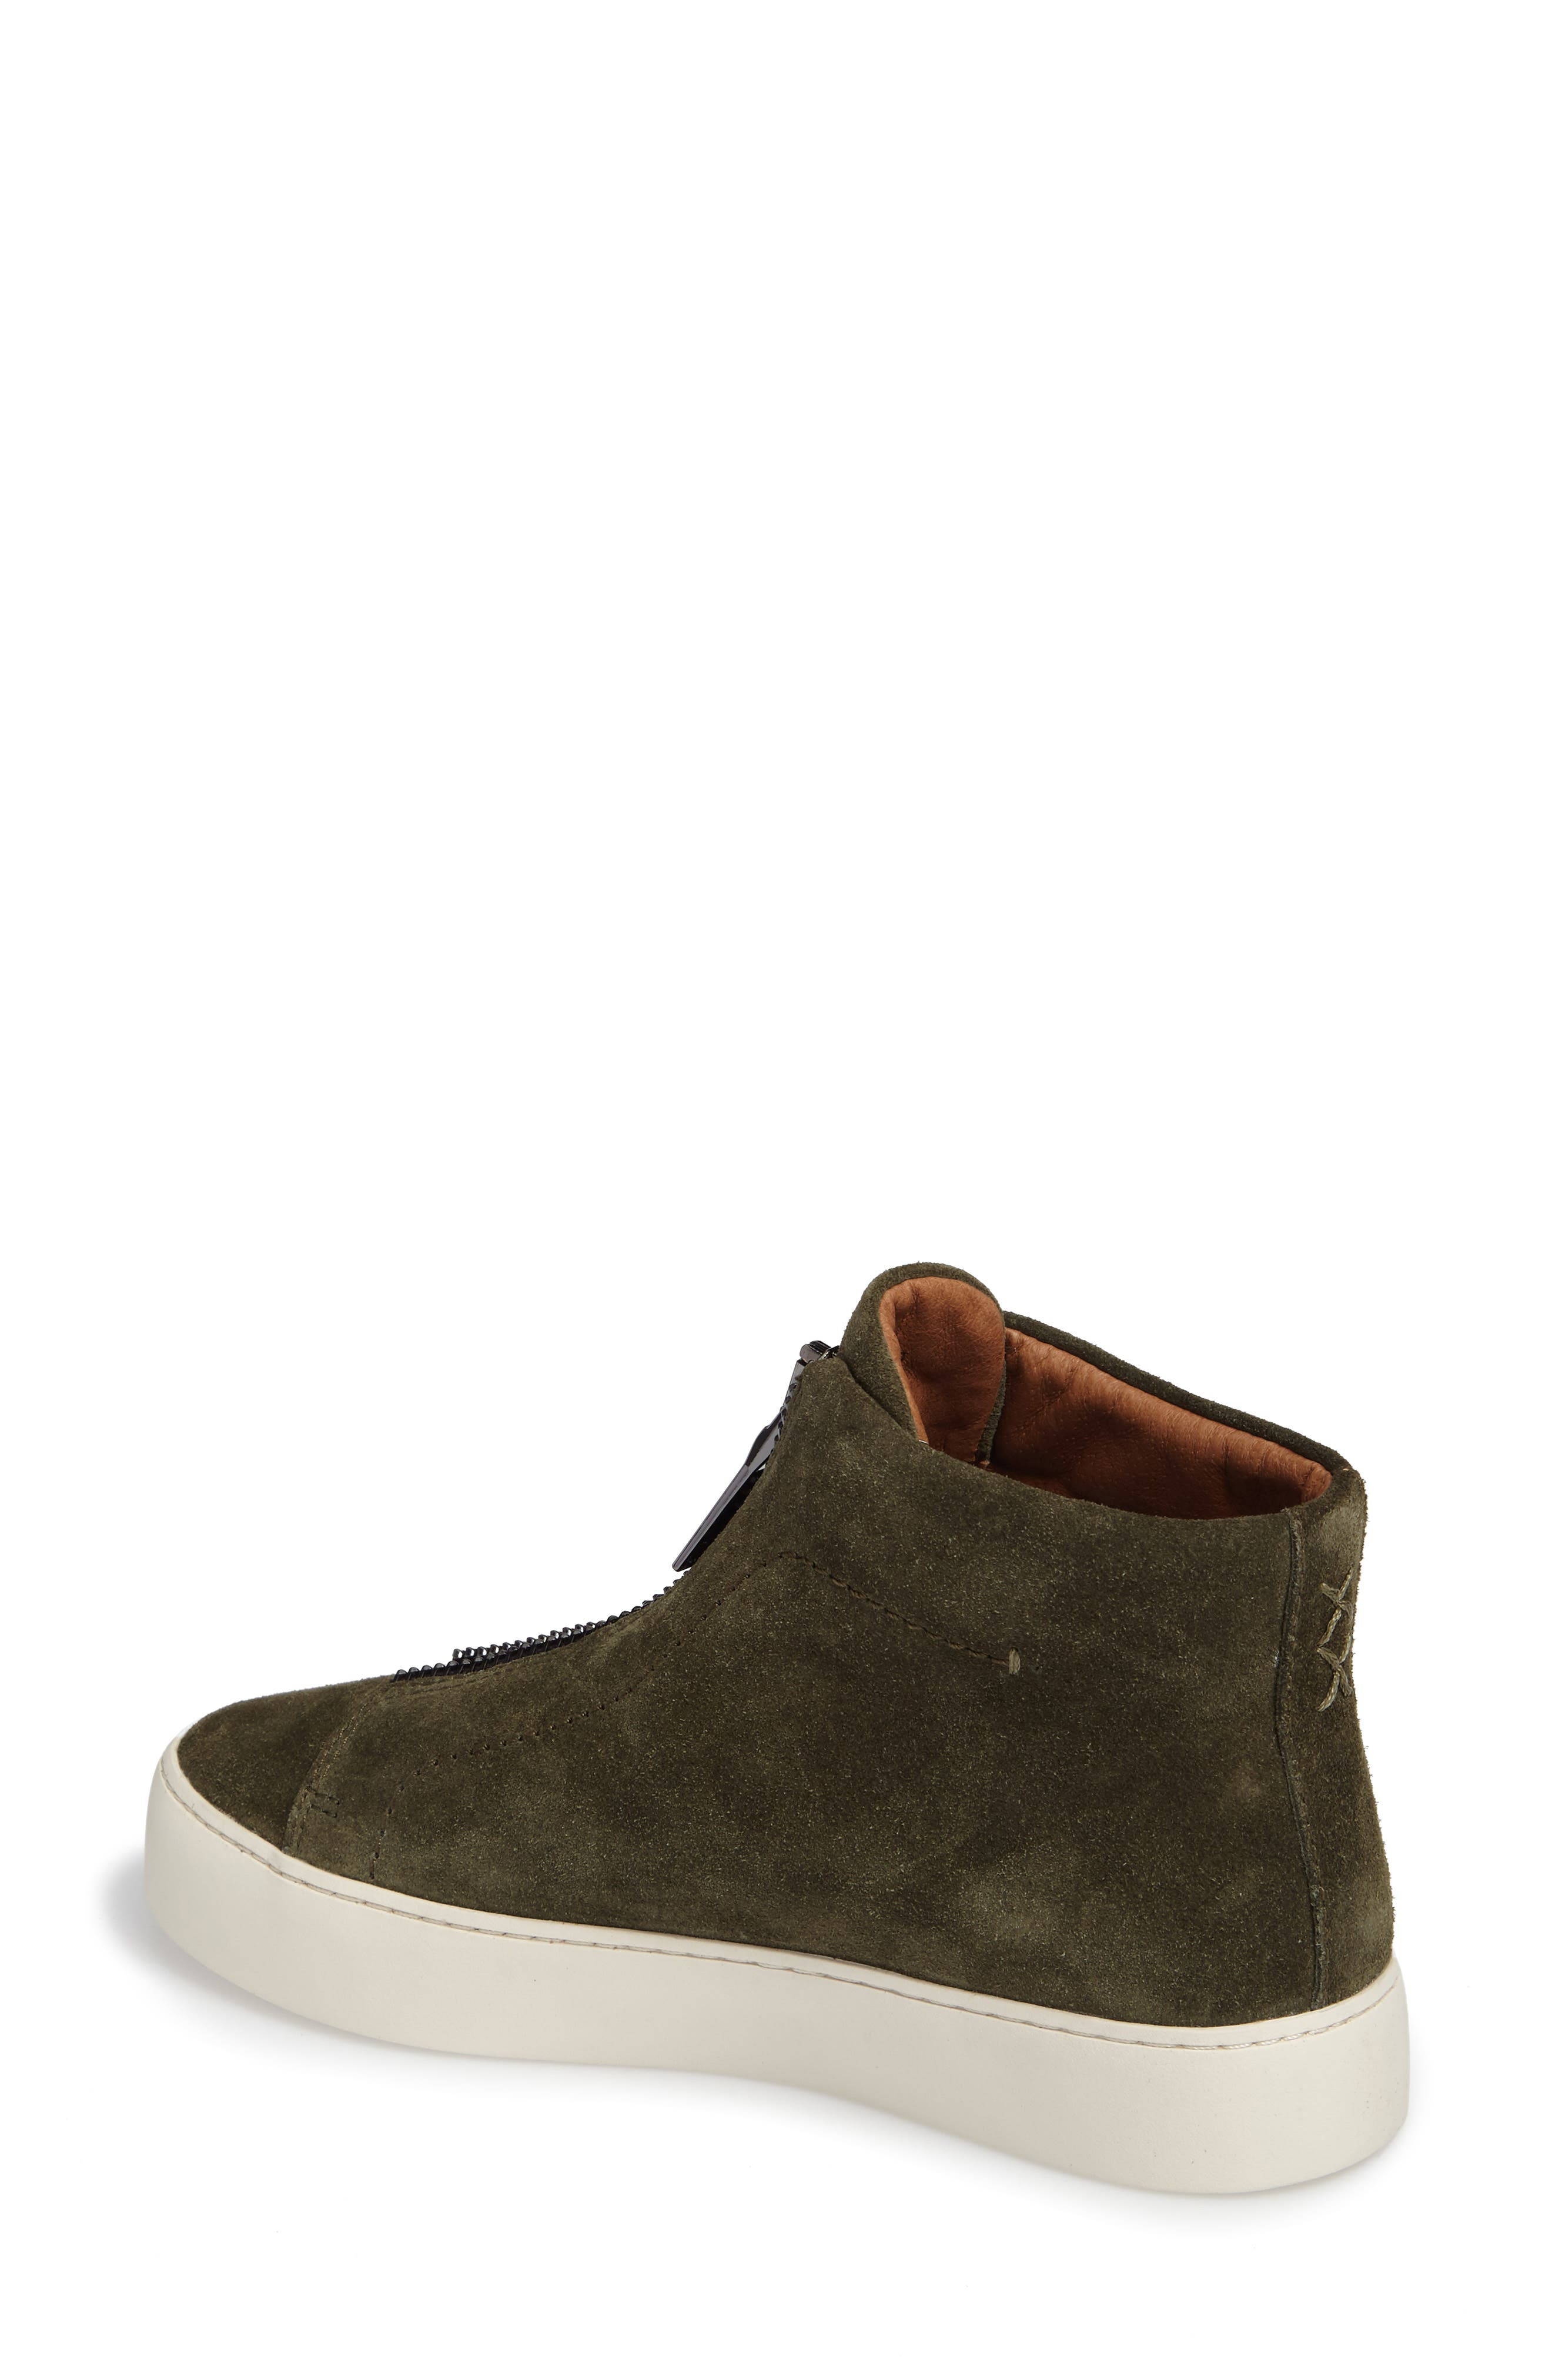 Lena Zip High Top Sneaker,                             Alternate thumbnail 2, color,                             Forest Suede